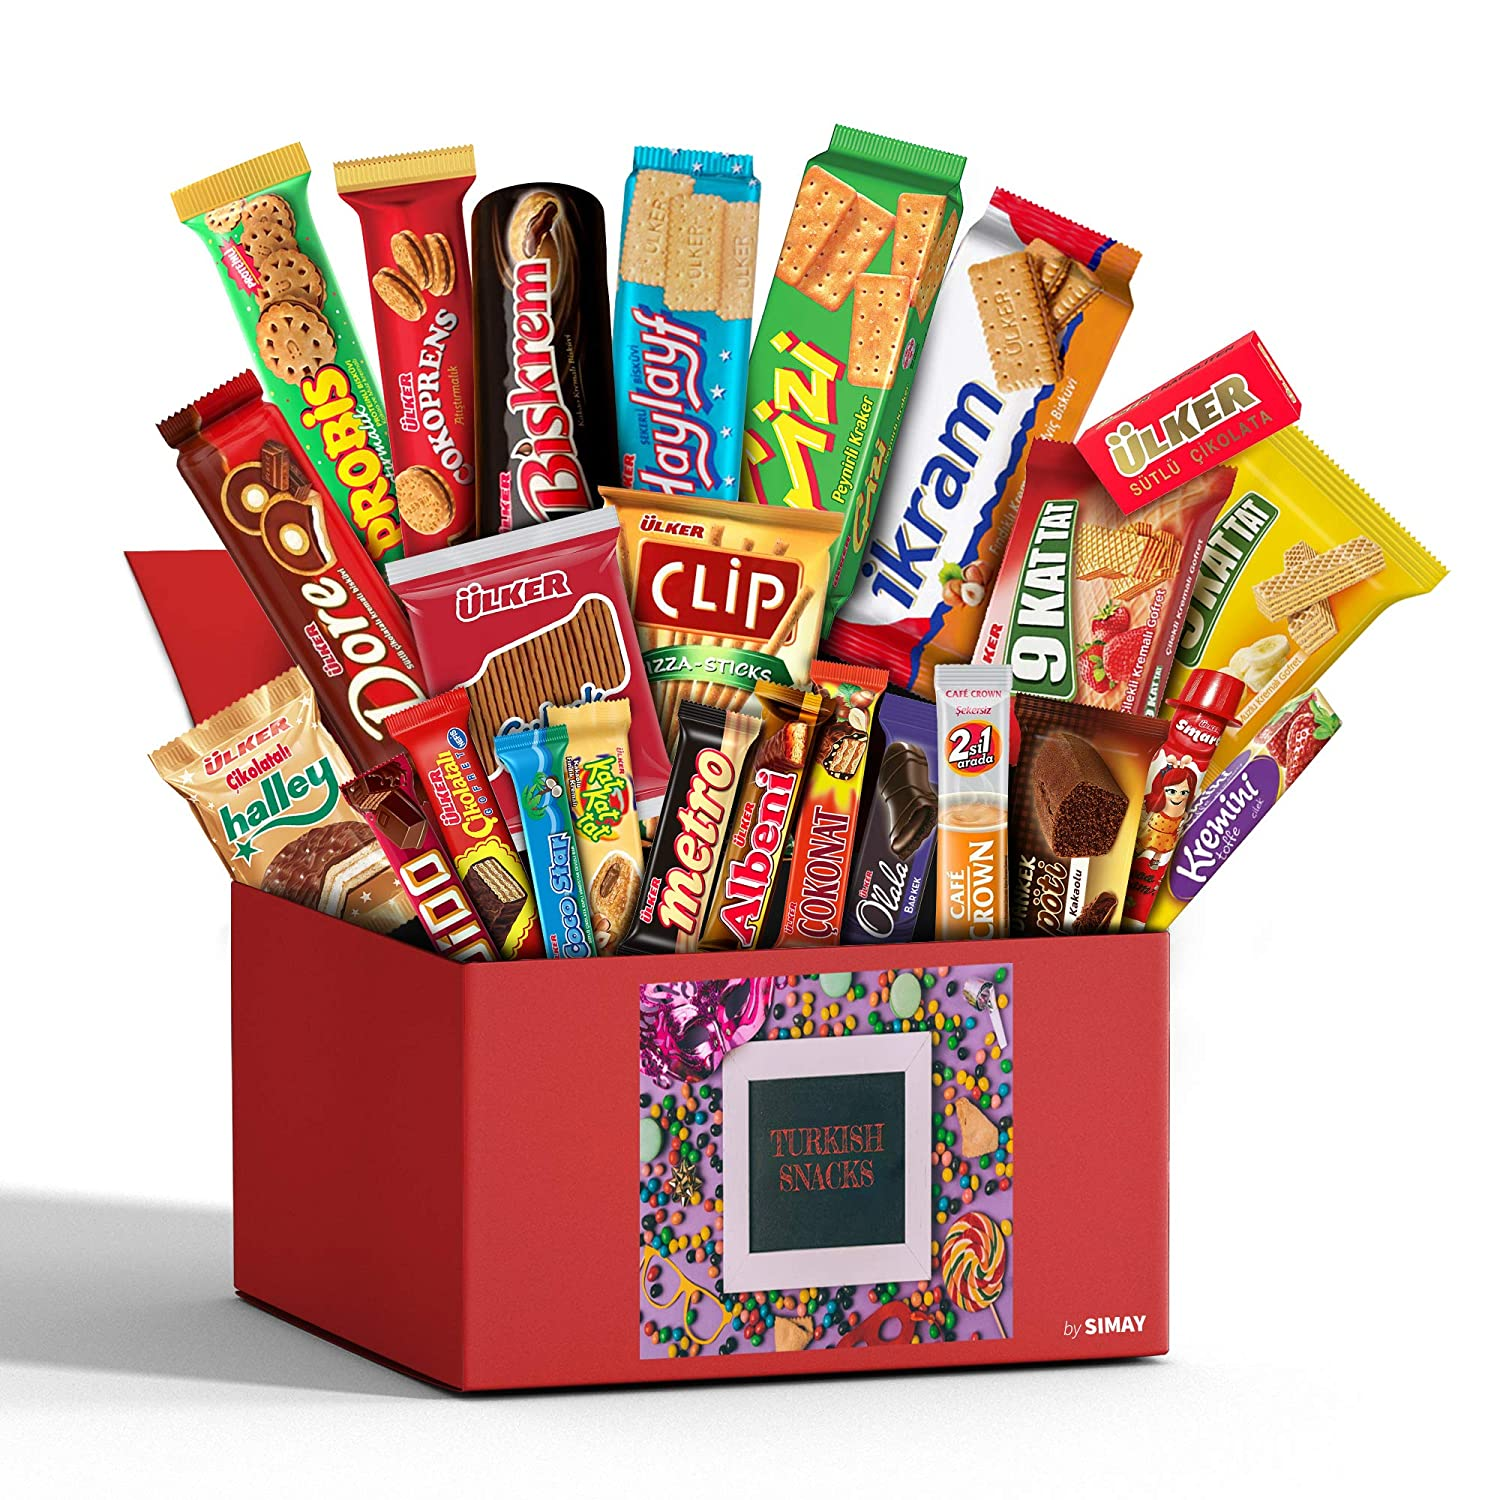 Large Turkish Foreign Snacks Box, European Chocolates, Candy, Cookies, 25 Count Variety International Snacks, Foreign Candy Gift Box, Healthy Snack Box from Around the World 2.9 lb.